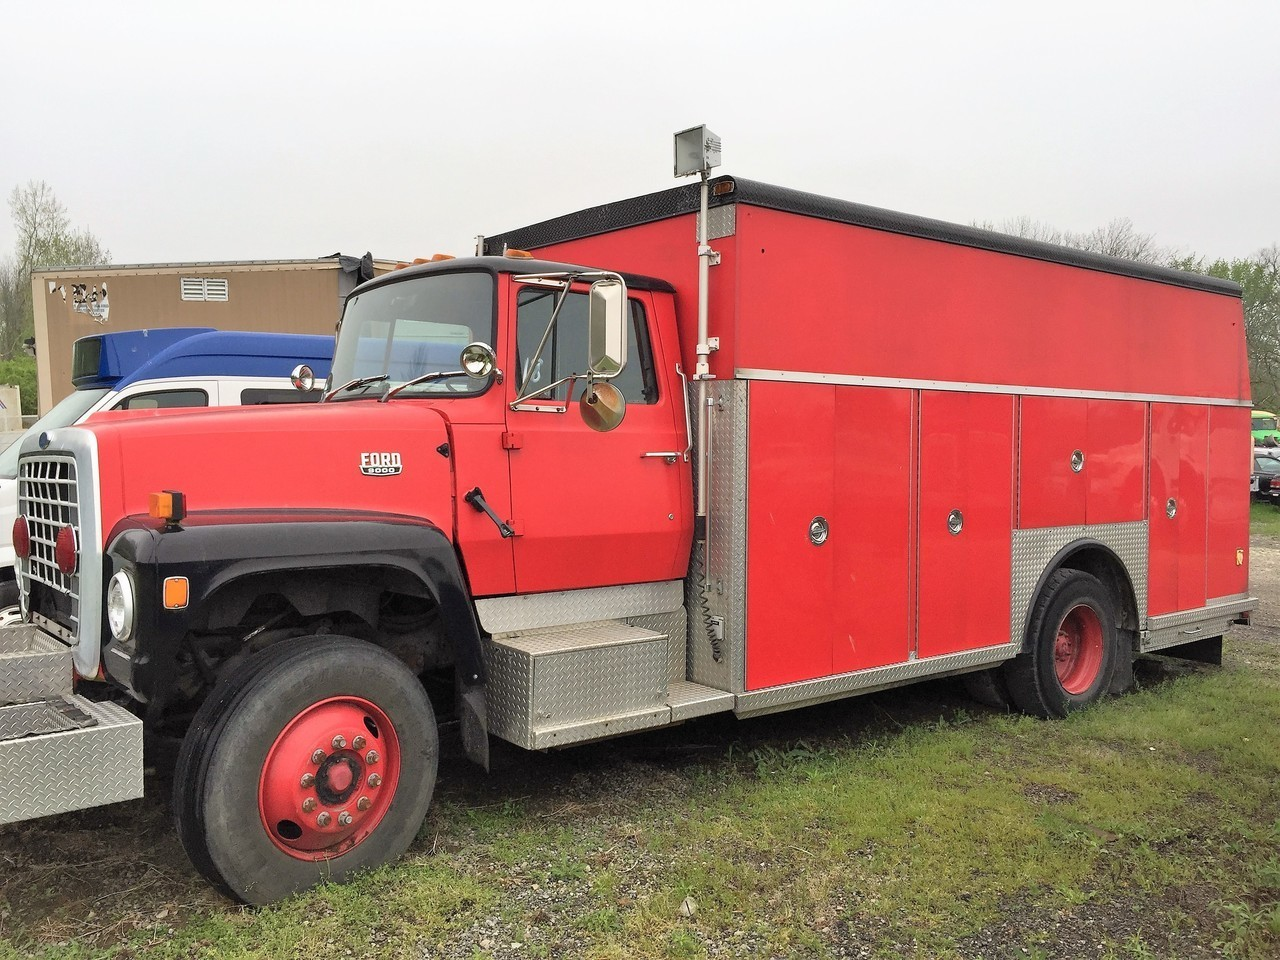 Used, 1985, FORD, F9000, Fire Truck